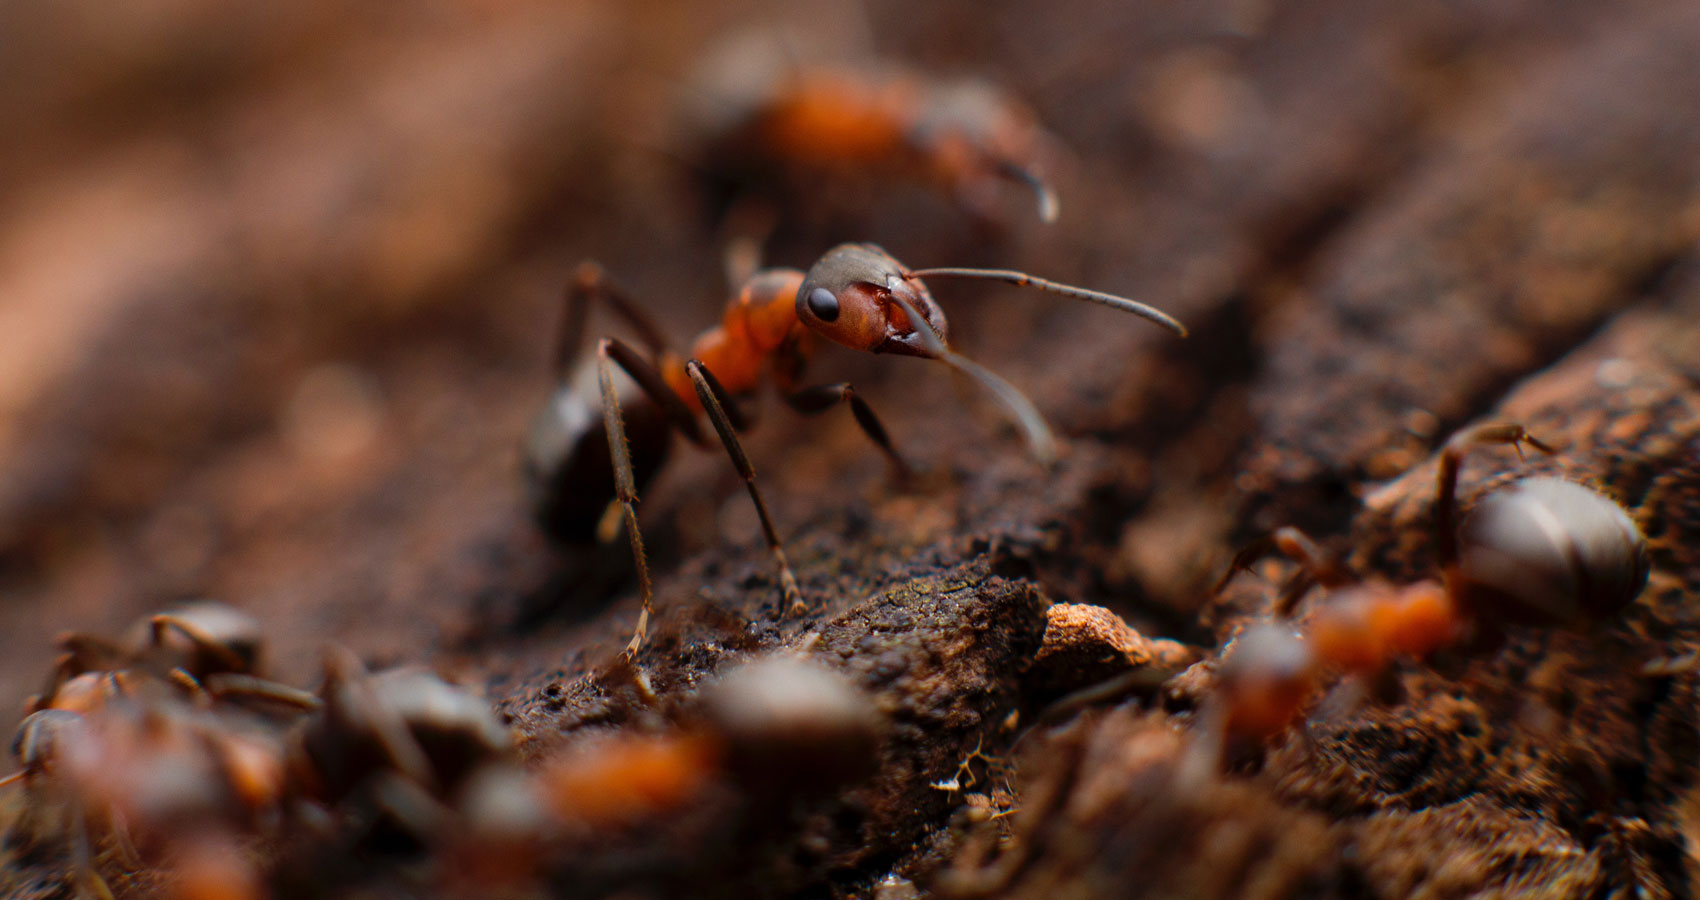 Of Ants and Men, flash fiction written by P.C. Darkcliff at Spillwords.com